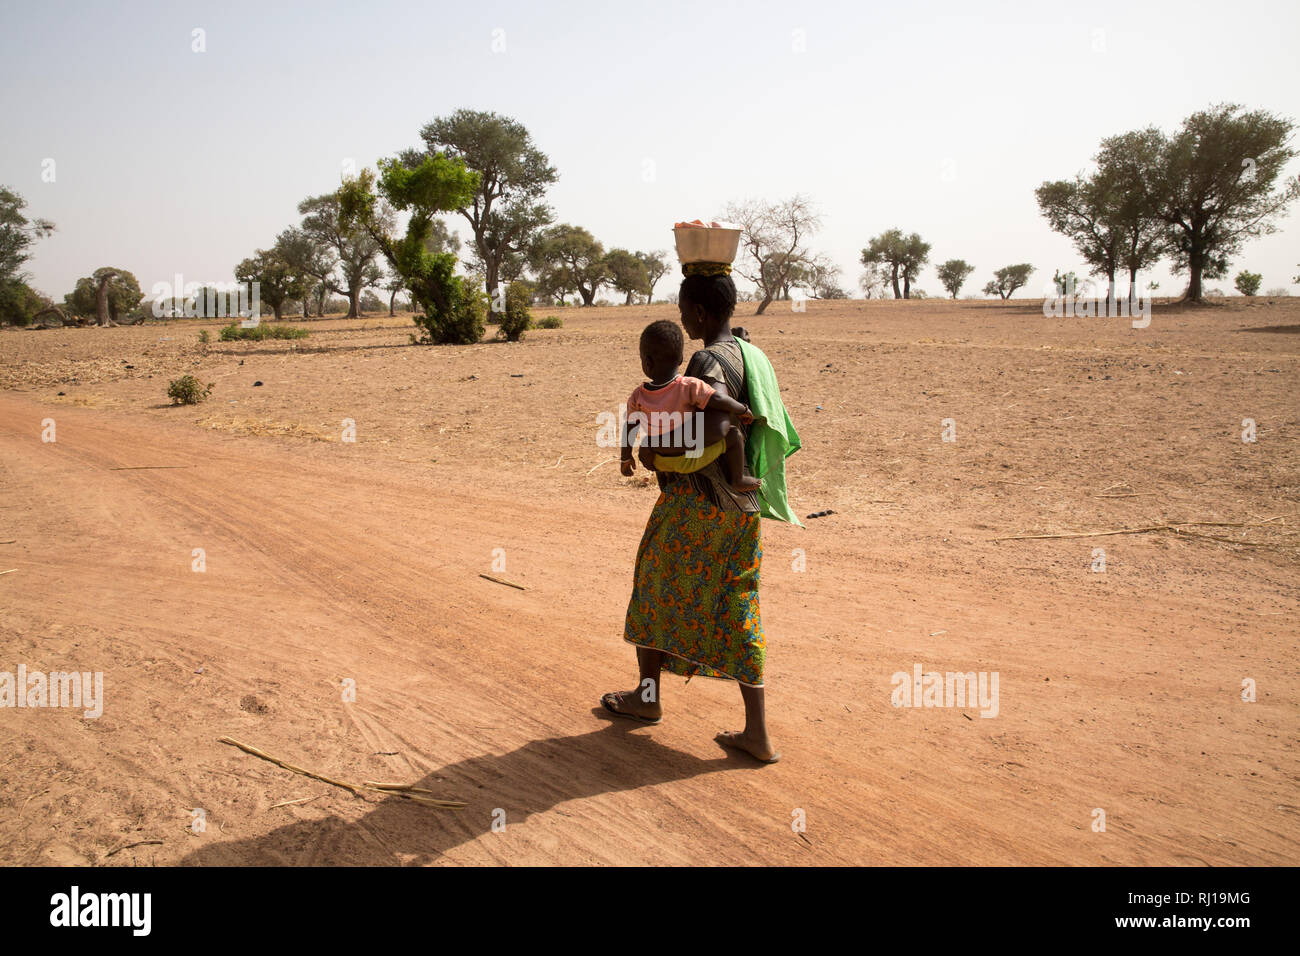 Samba village, Yako Province, Burkina Faso; Sally Zoundi, 35, with her baby Salomon Zoundi, 15 months, on her way to work at the local goldmine to support her family. Stock Photo